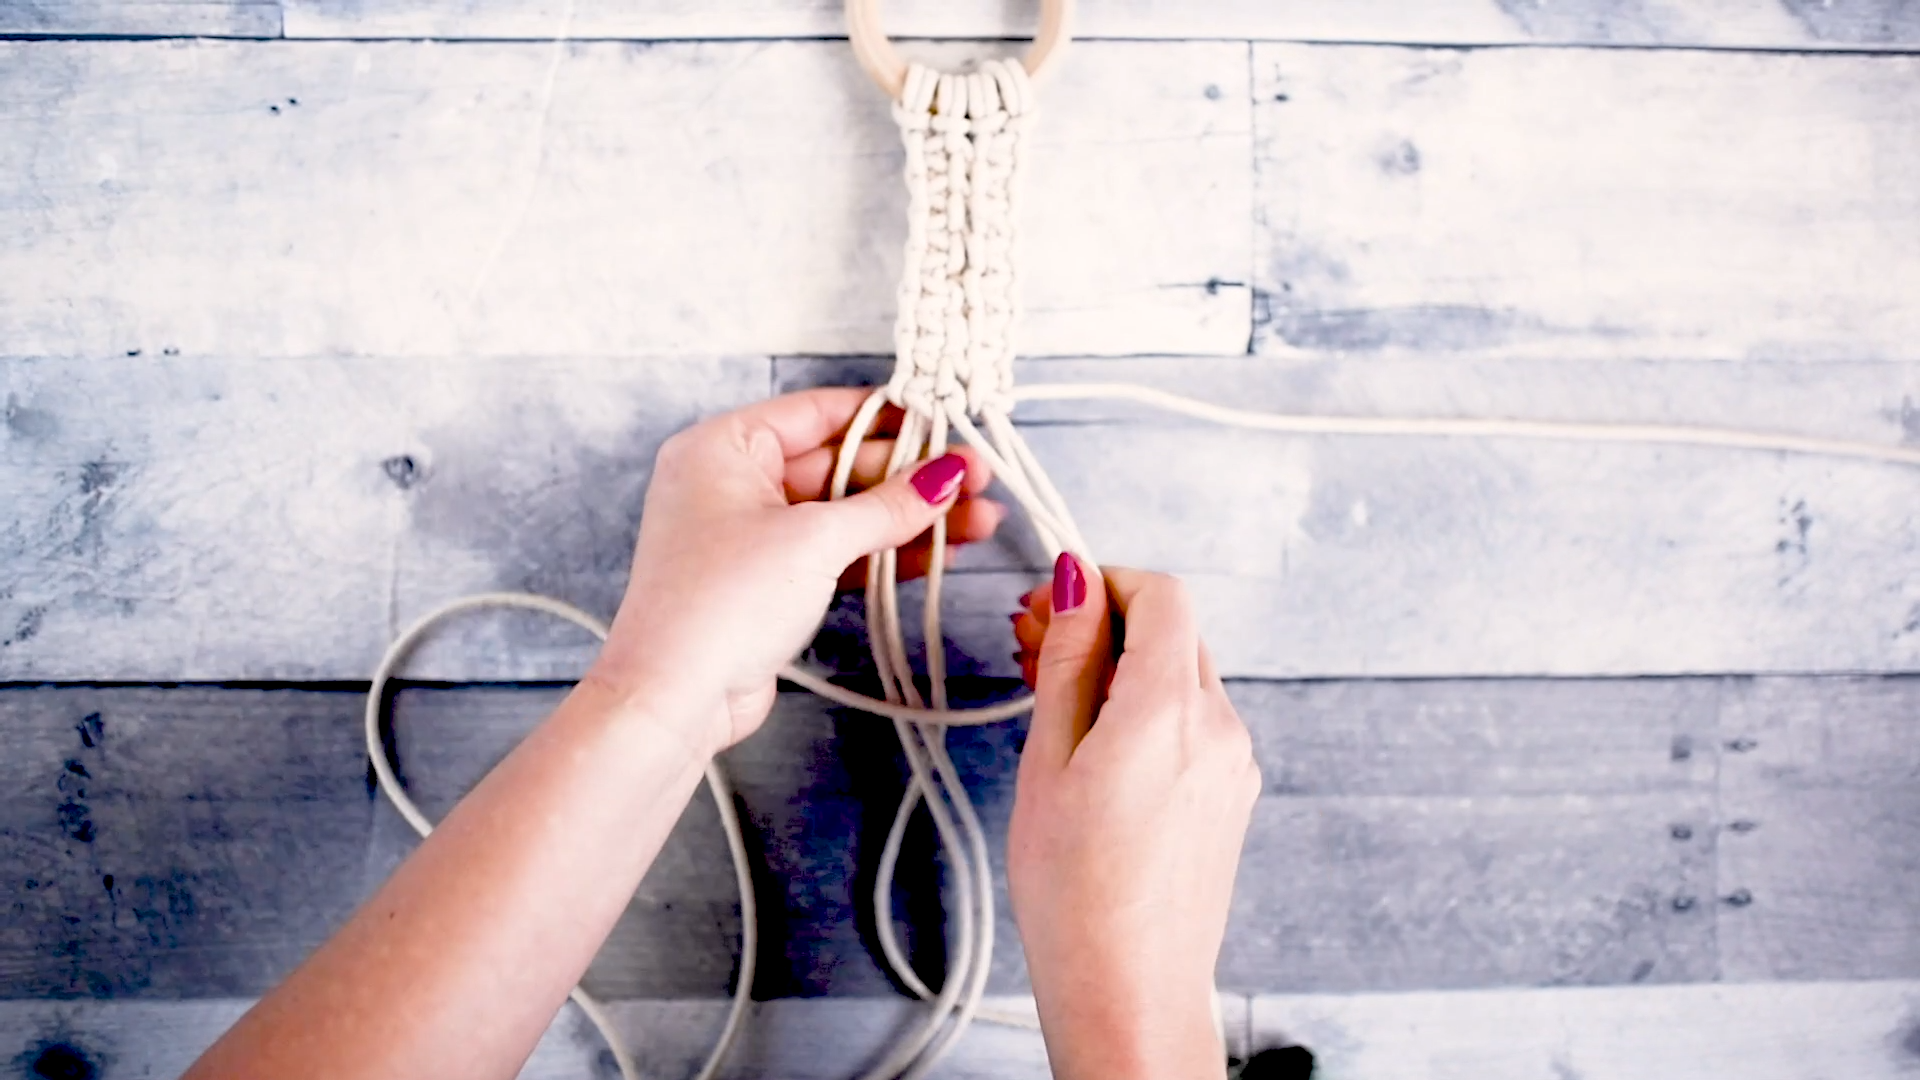 Best 11 Using a few different classic macrame knots, create your own hanging mirror and plant holder (plus extra macrame cord for another project of your choice). Included in this kit is 50 yds of macrame cord, a 10